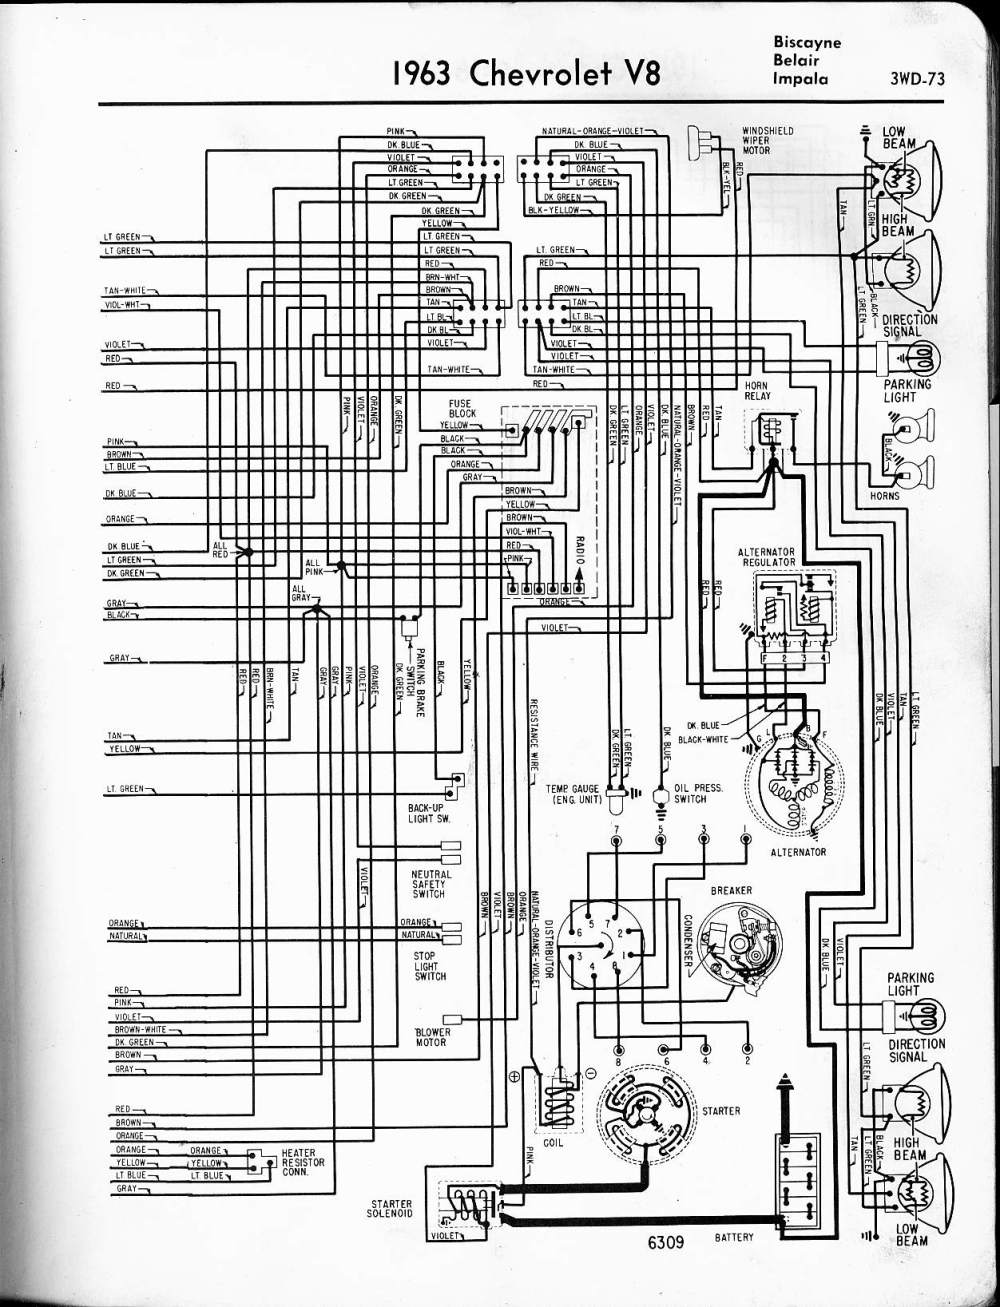 medium resolution of 57 65 chevy wiring diagrams 2006 chevy impala wiring diagram 1963 v8 biscayne belair